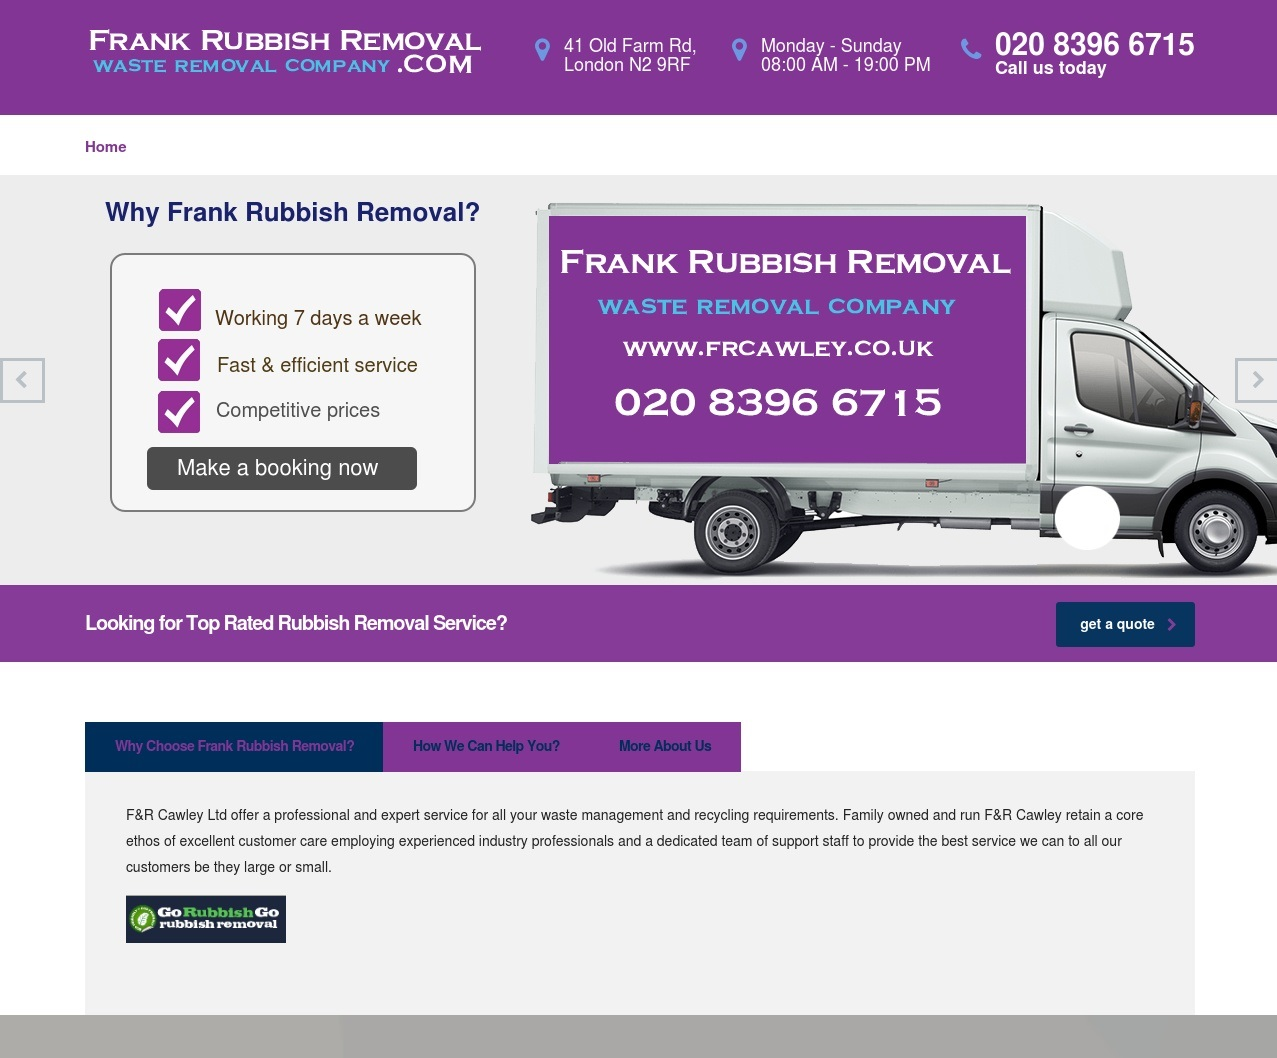 Frank Rubbish Removal